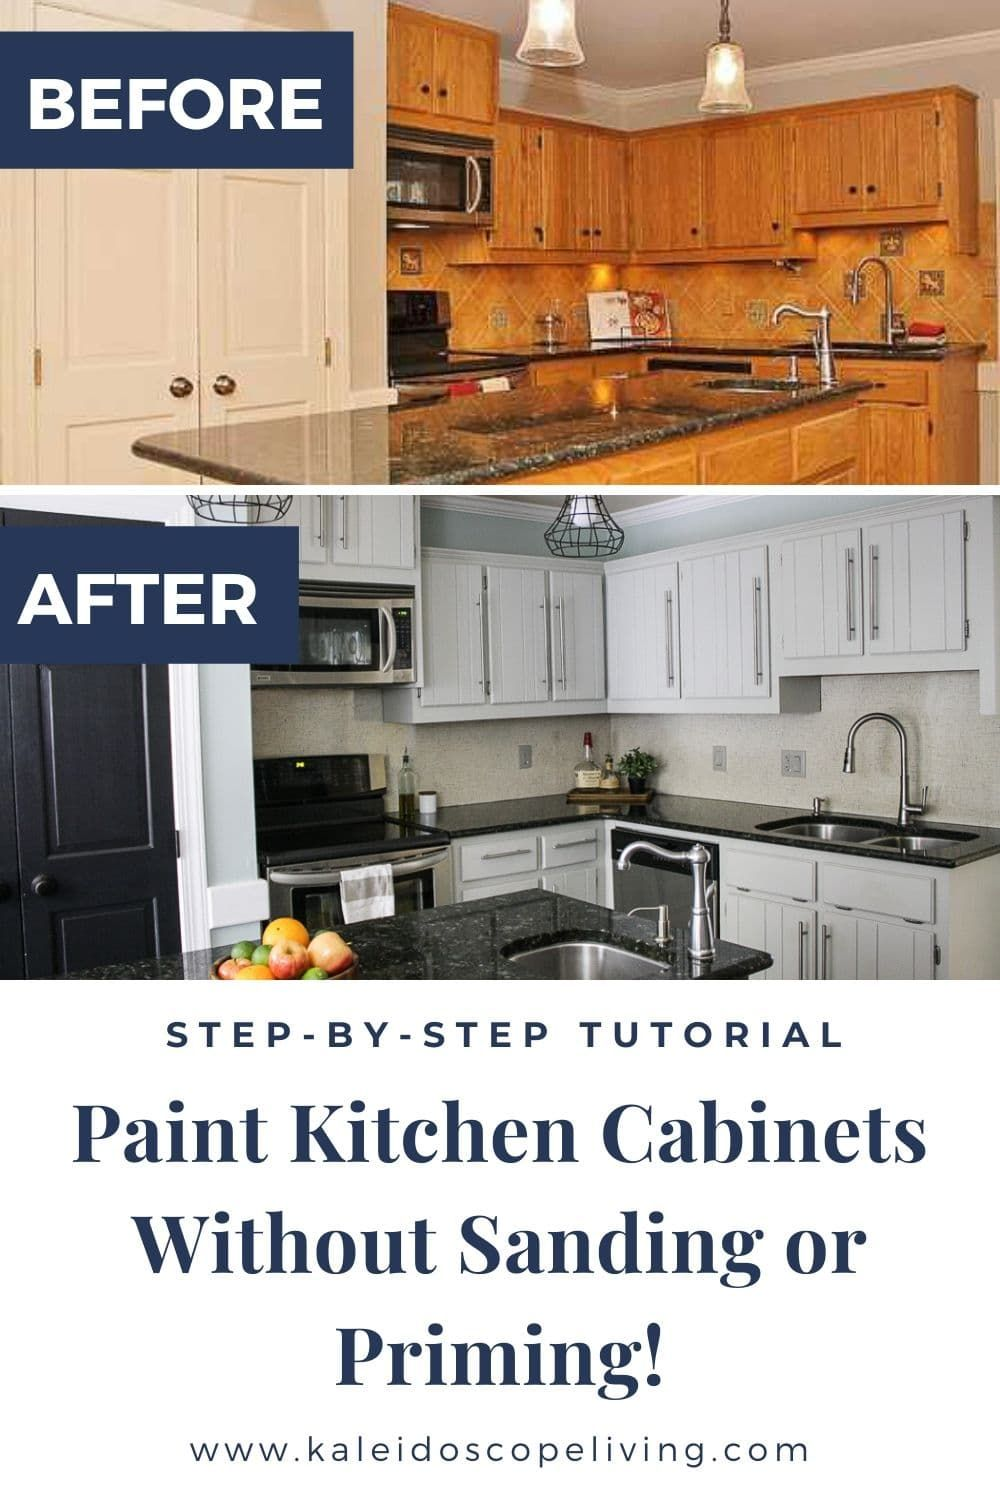 How To Paint Kitchen Cabinets Without Sanding Or Priming Step By Step Kitchen Diy Makeover Painting Kitchen Cabinets New Kitchen Cabinets